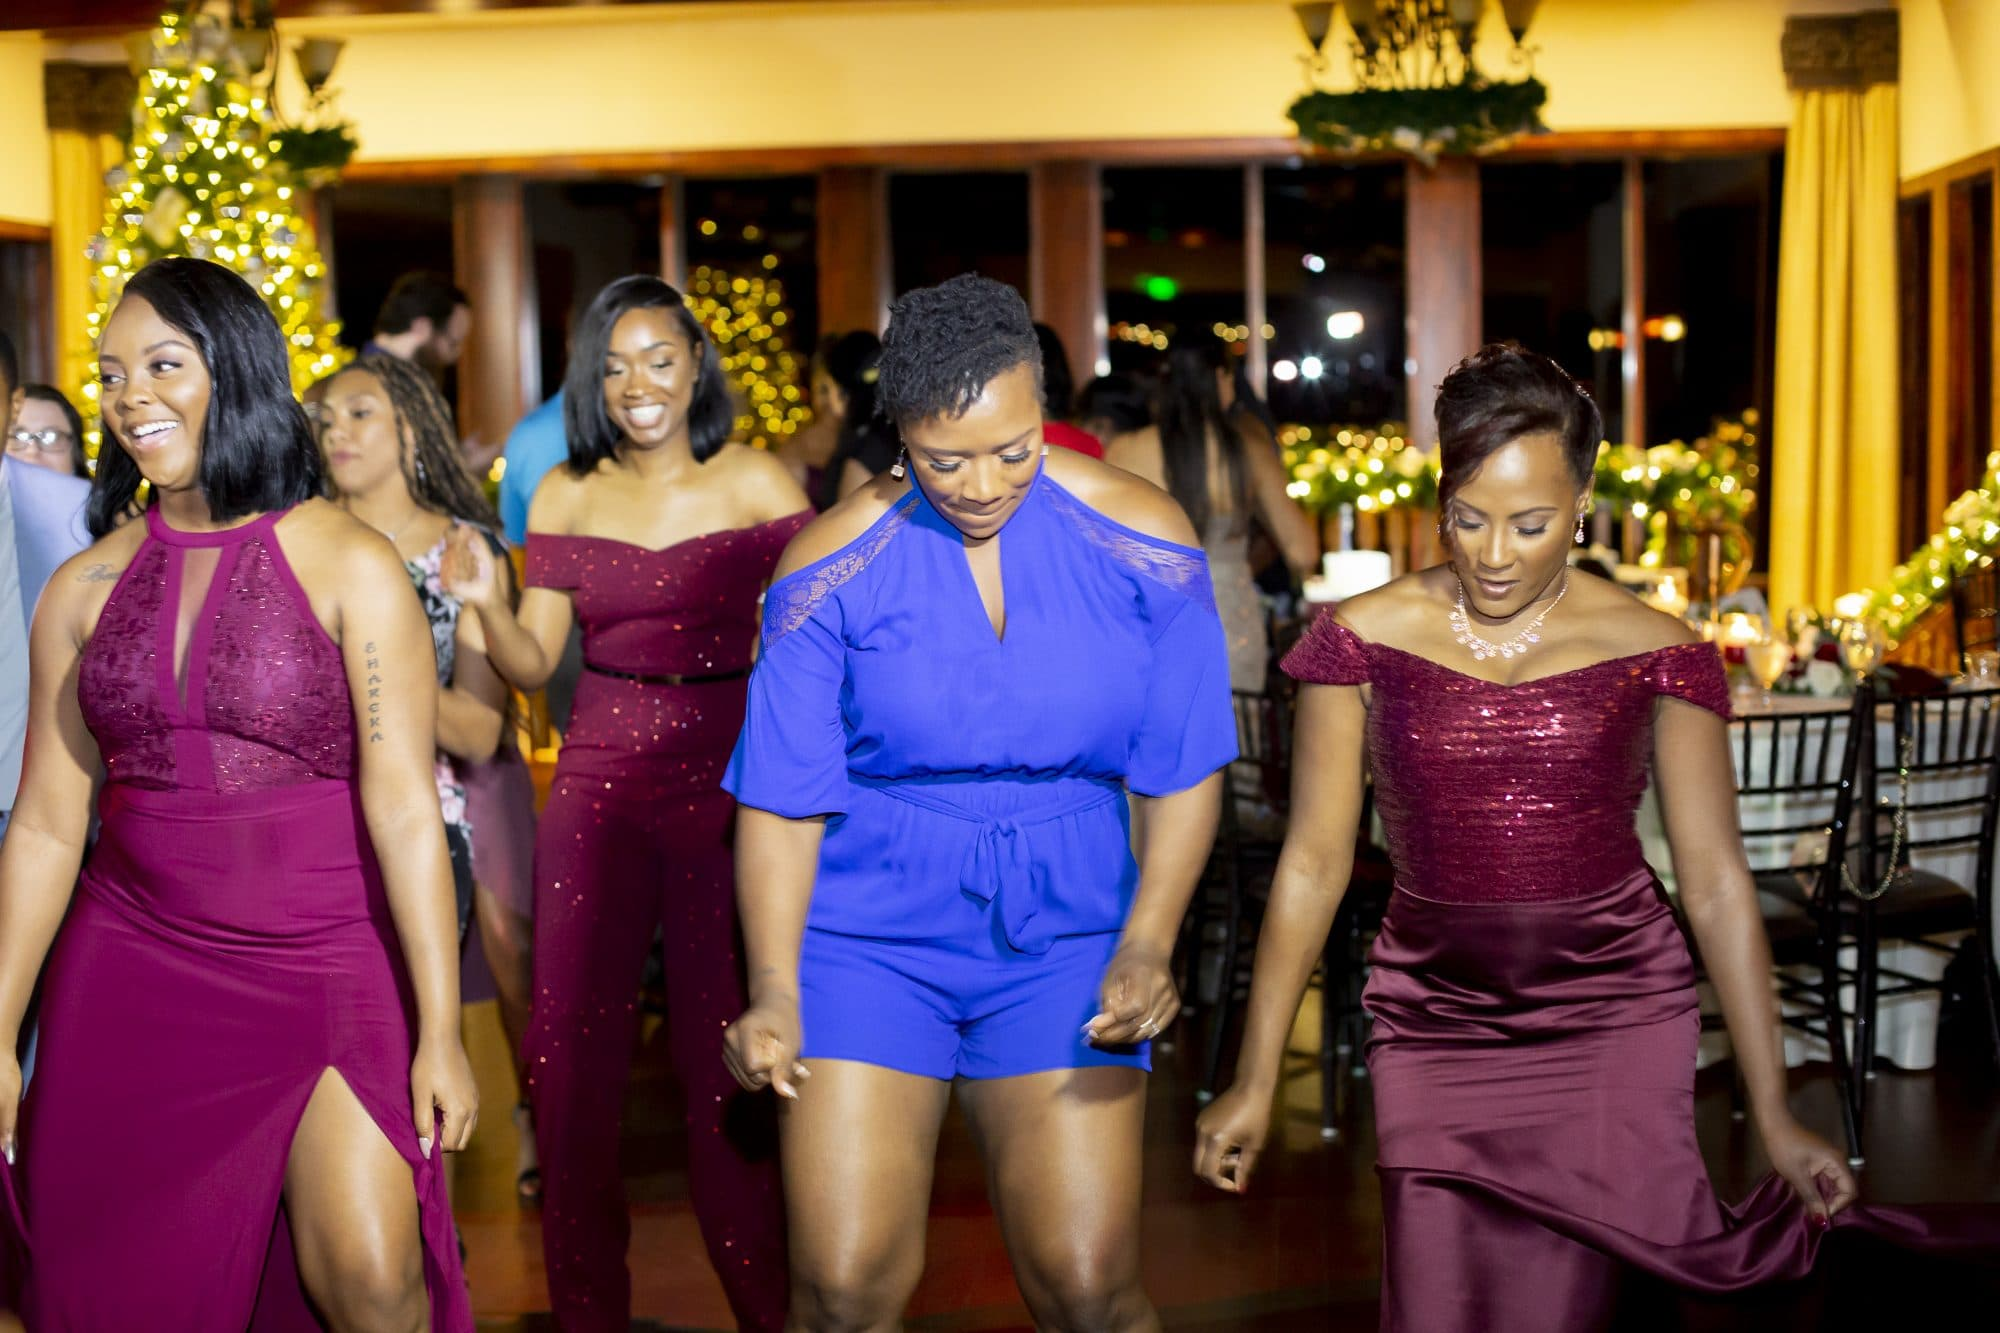 Wedding guests and bridesmaids on the dance floor